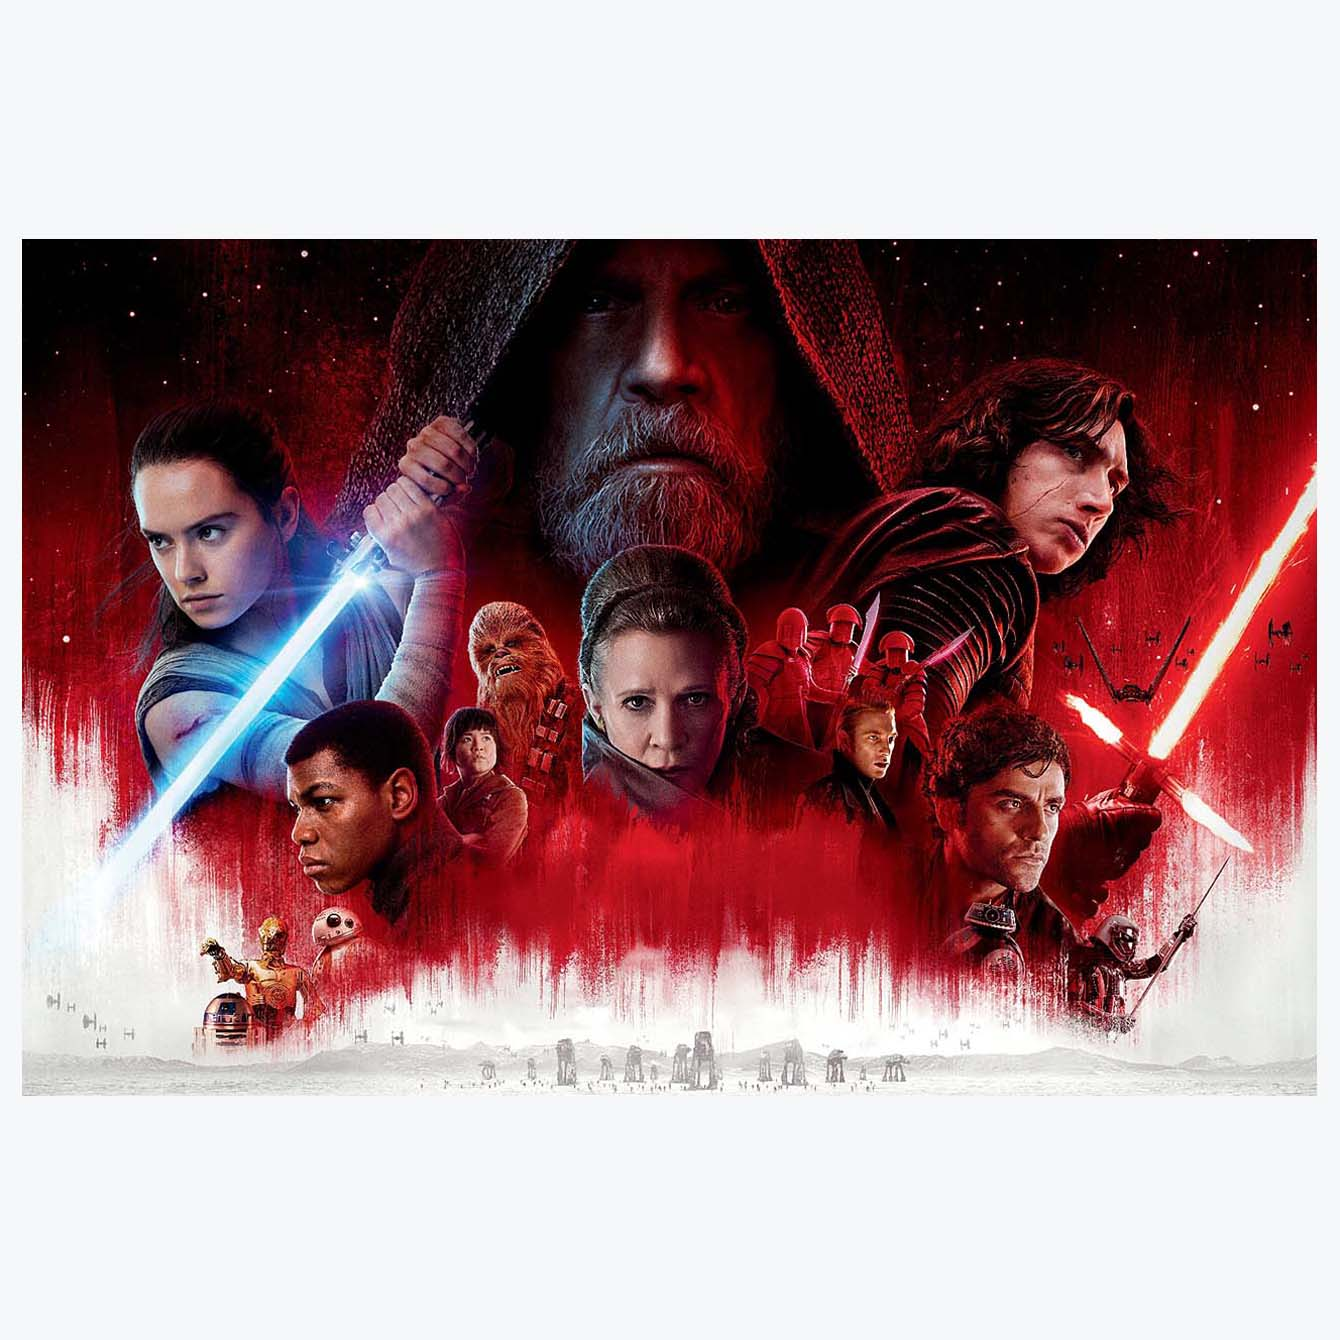 Star Wras The Last Jedi Movies Posters